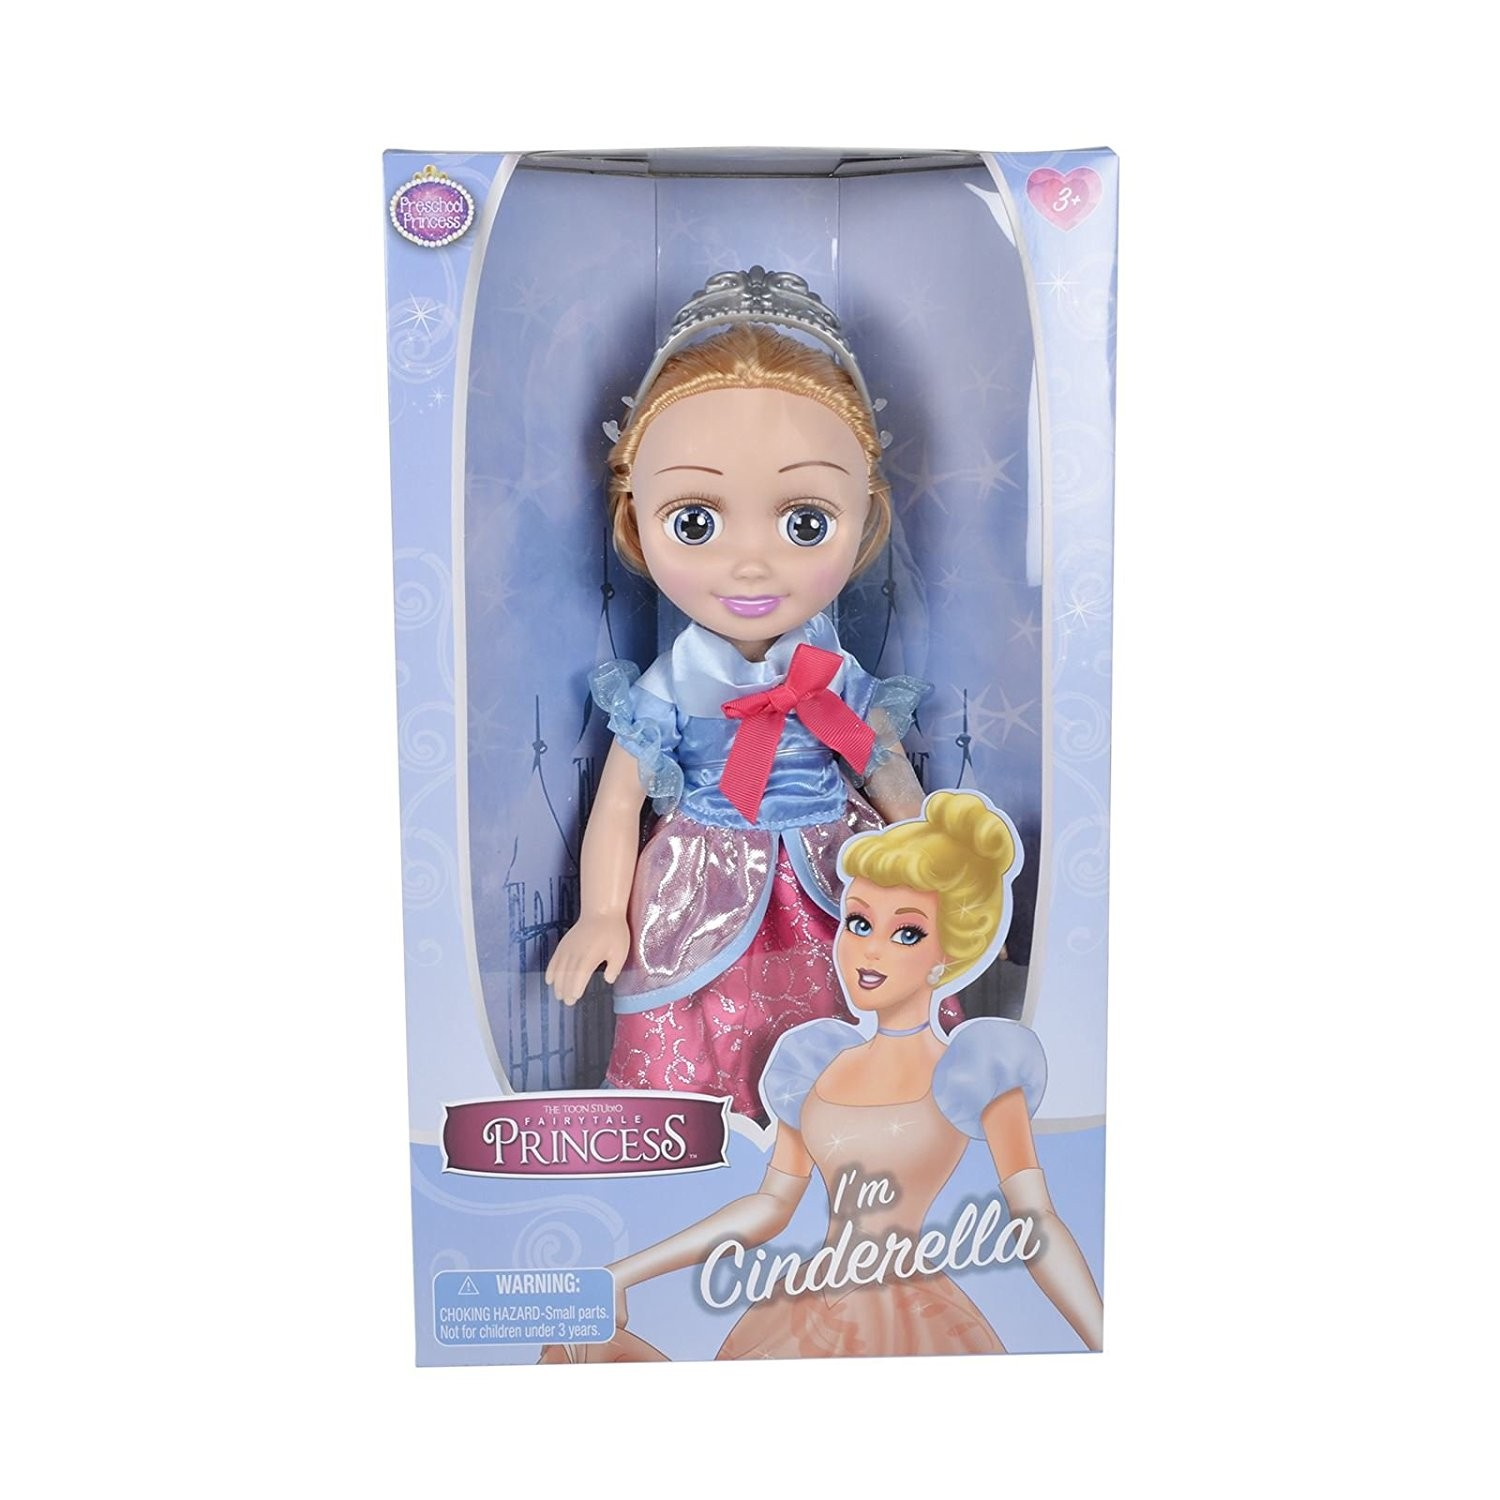 Details about Fairytale Princess Cinderella Toddler Doll Childrens Girls  Toy Fairy Tale Figure